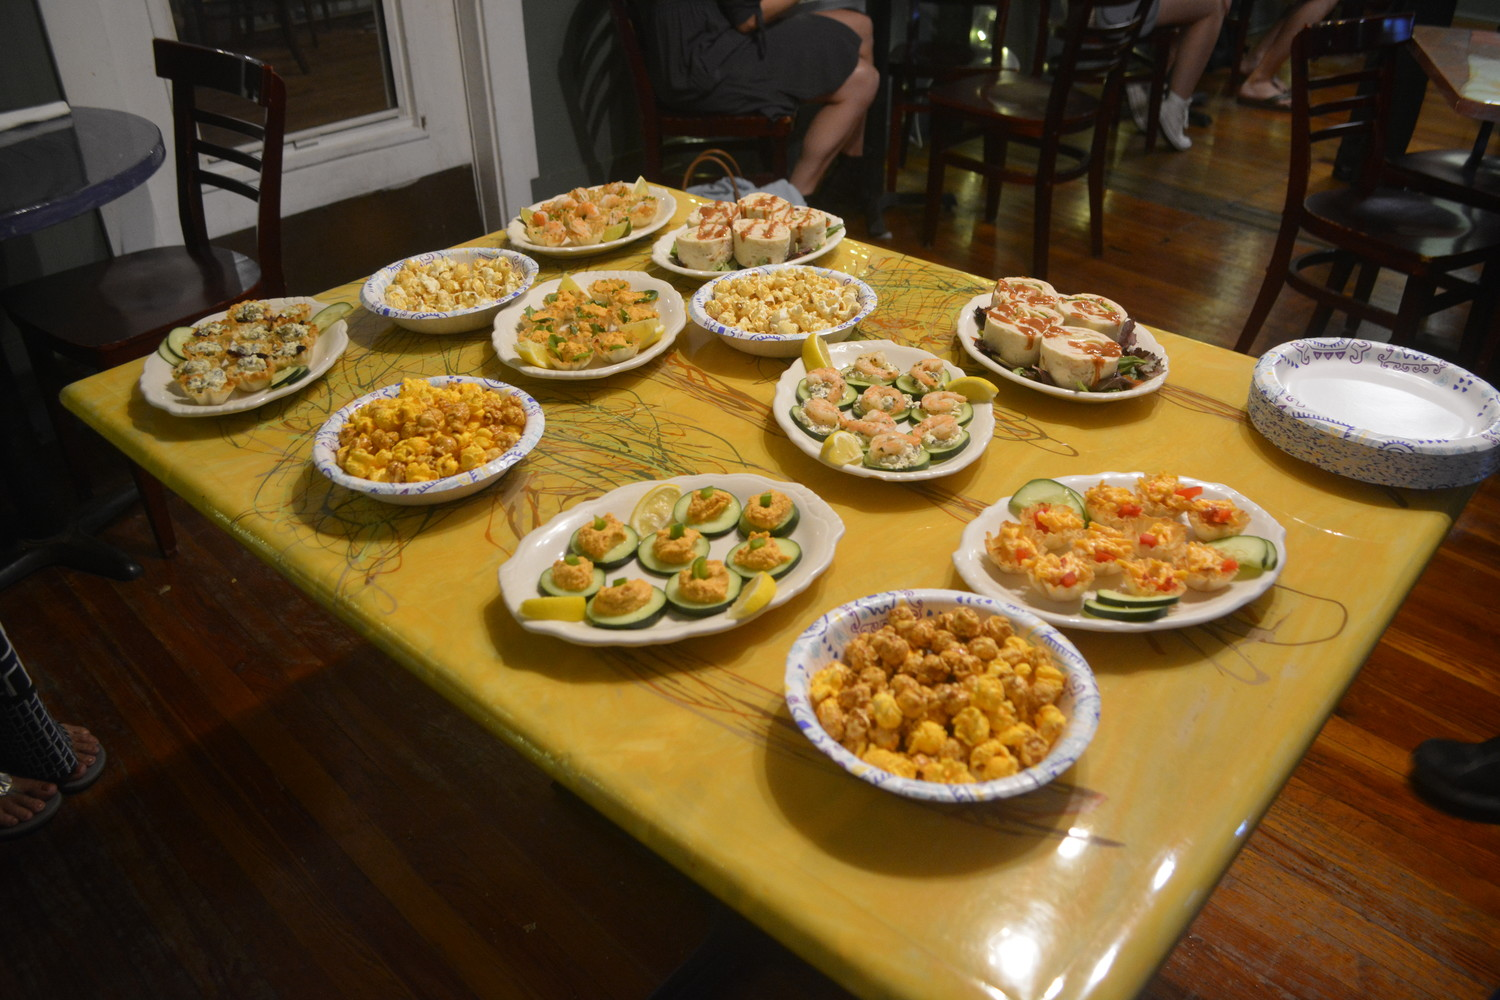 Hors d'oeuvres were available for attendees at the awards ceremony and horror movie screening in Fernandina Beach.